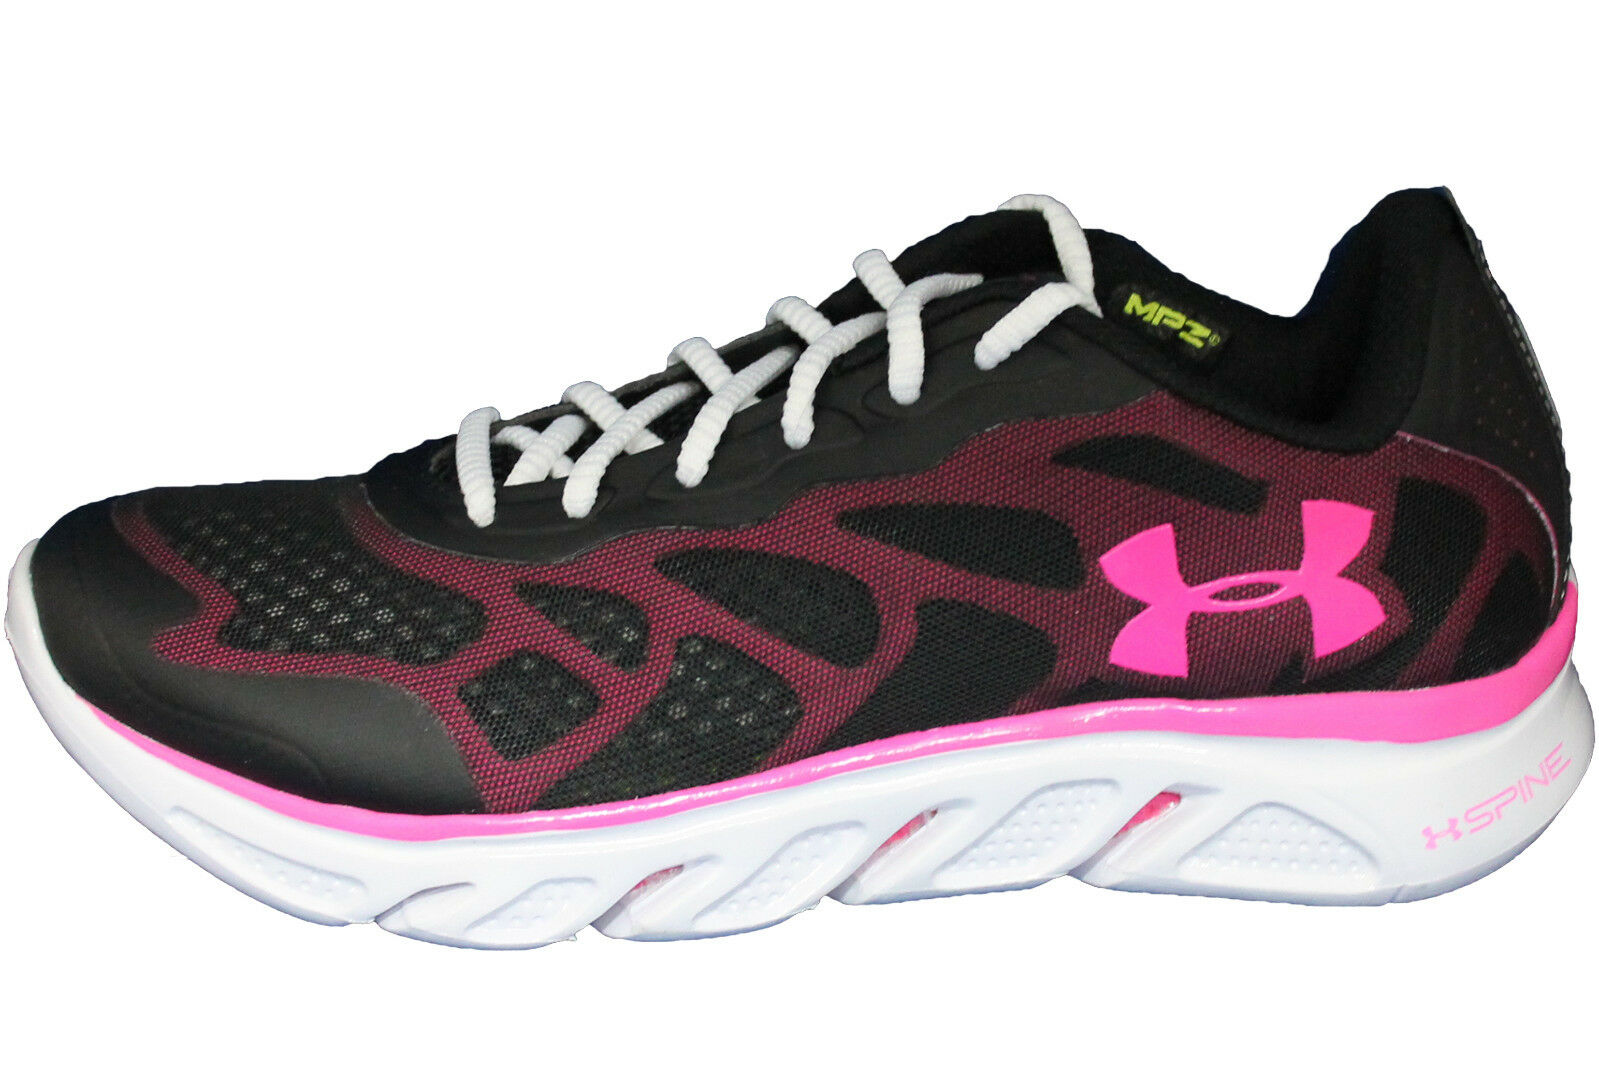 Womens Under Armour Micro G Spine Venom PIP Running Shoe-1240101-001